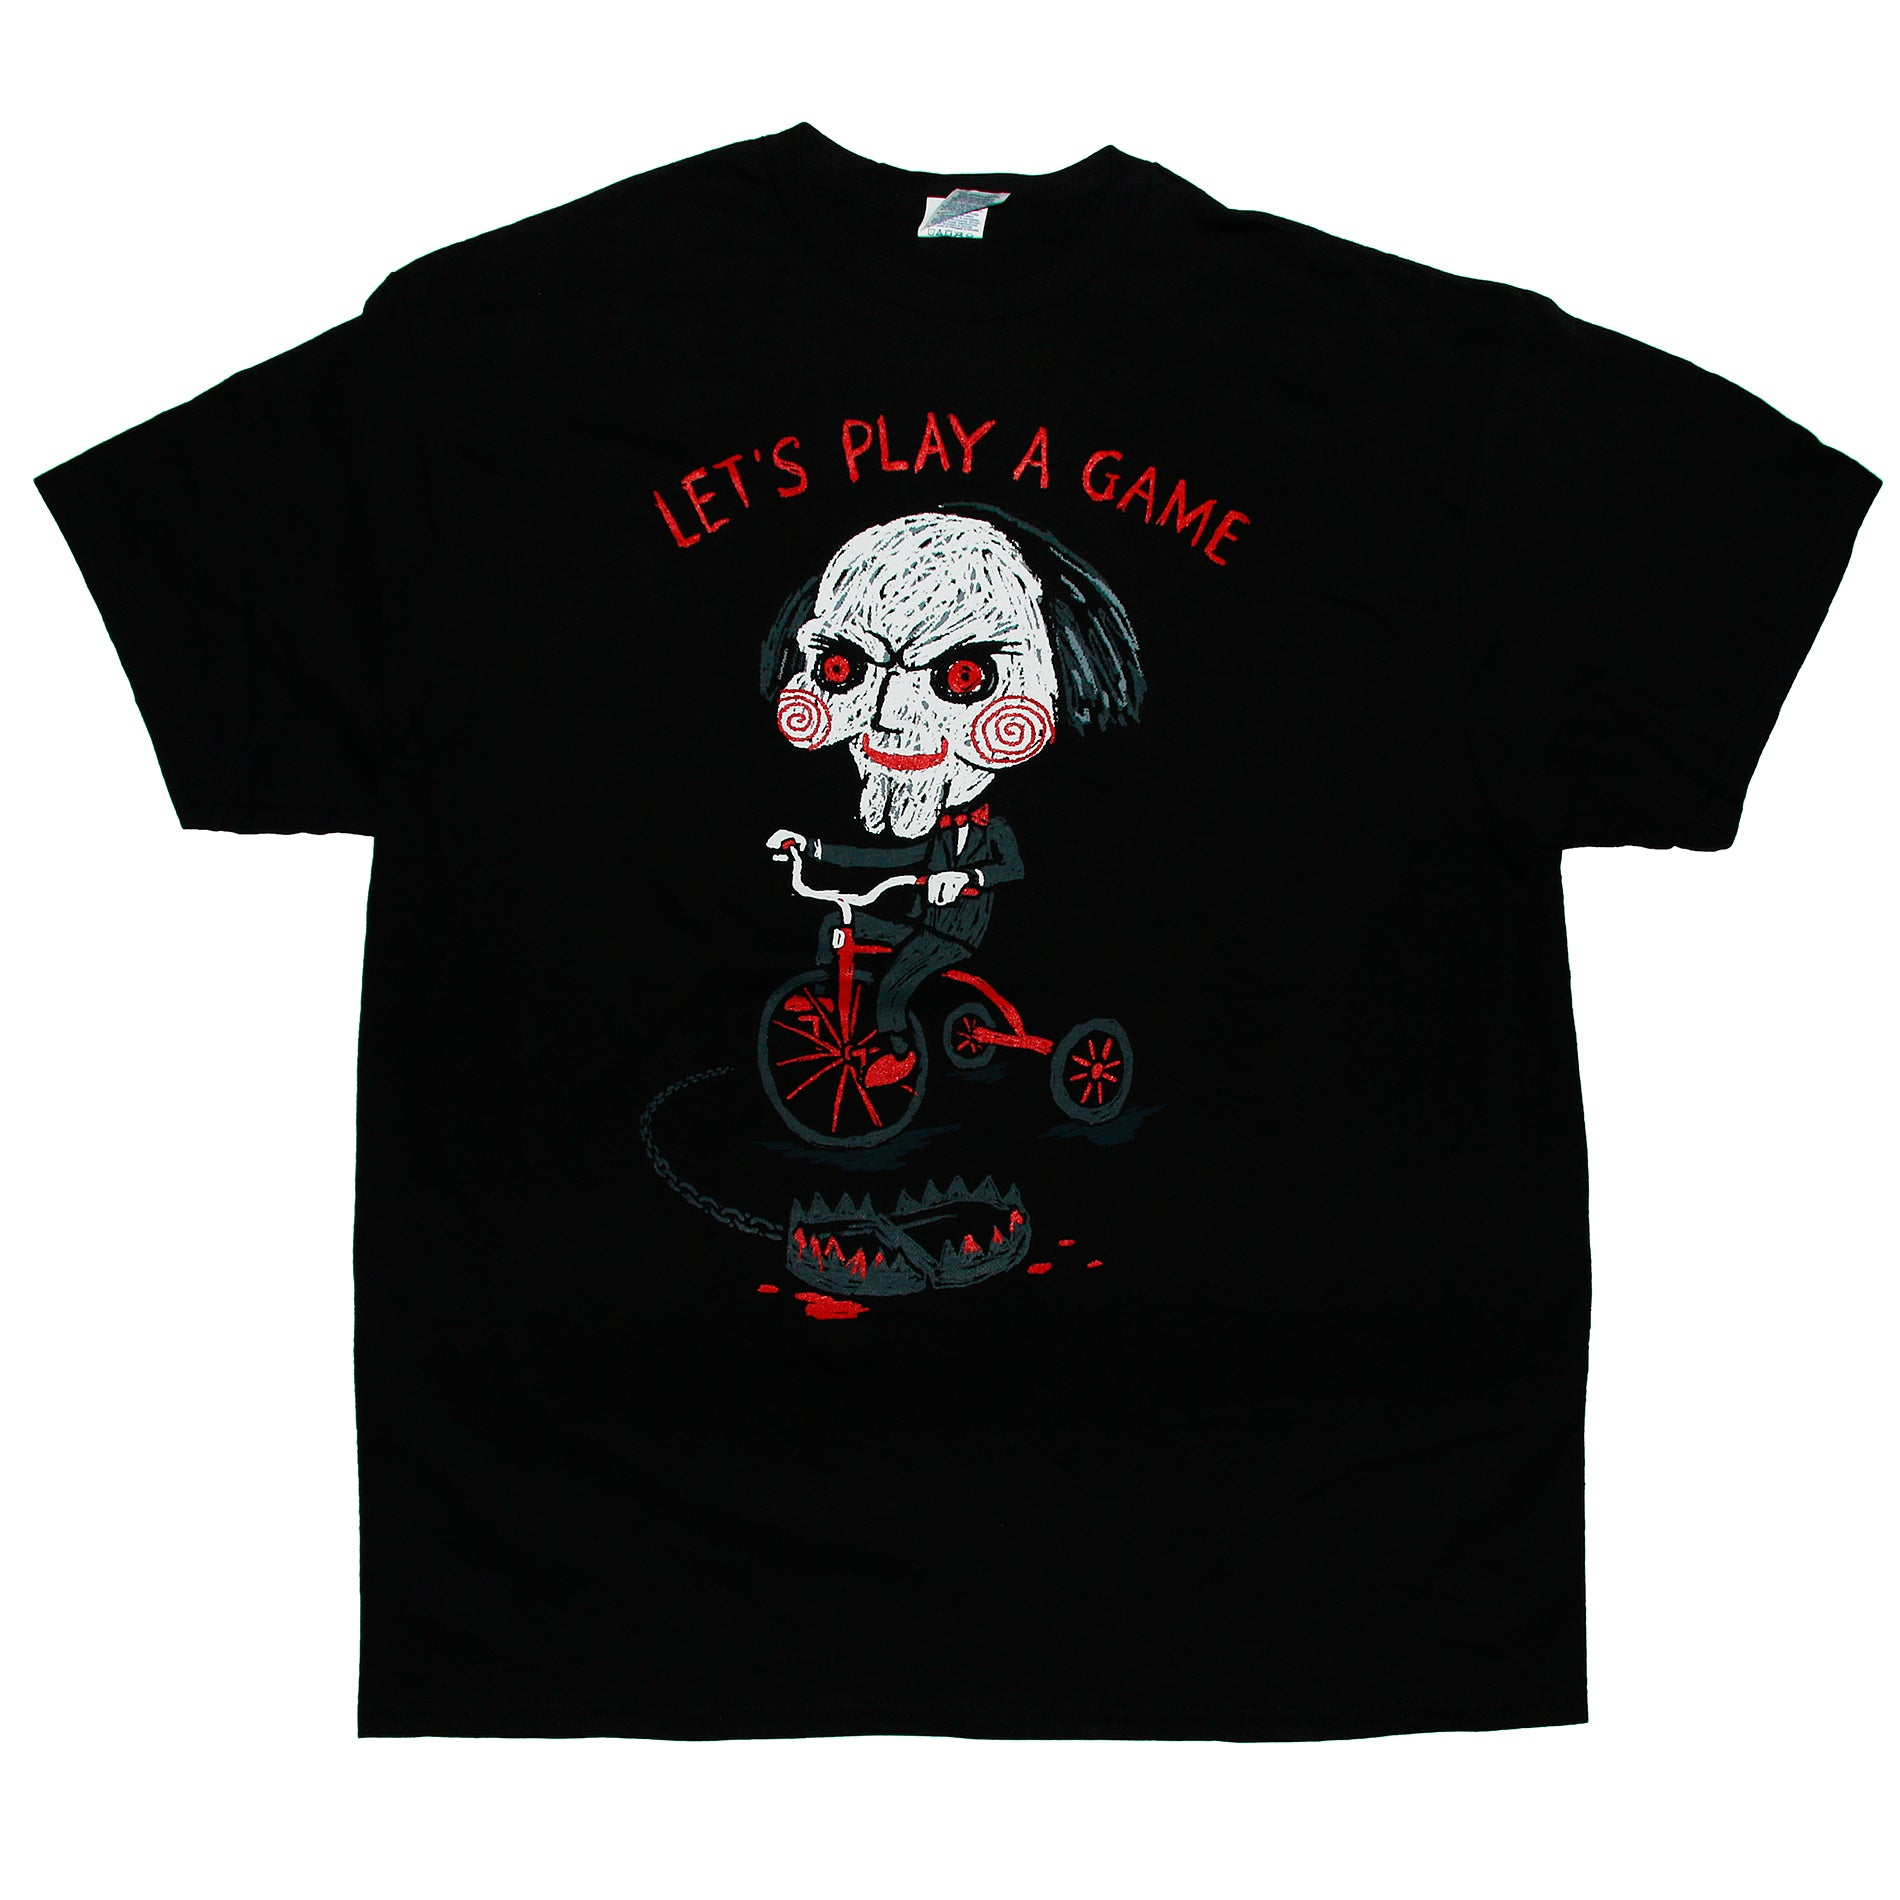 Saw LET'S PLAY A GAME T Shirt